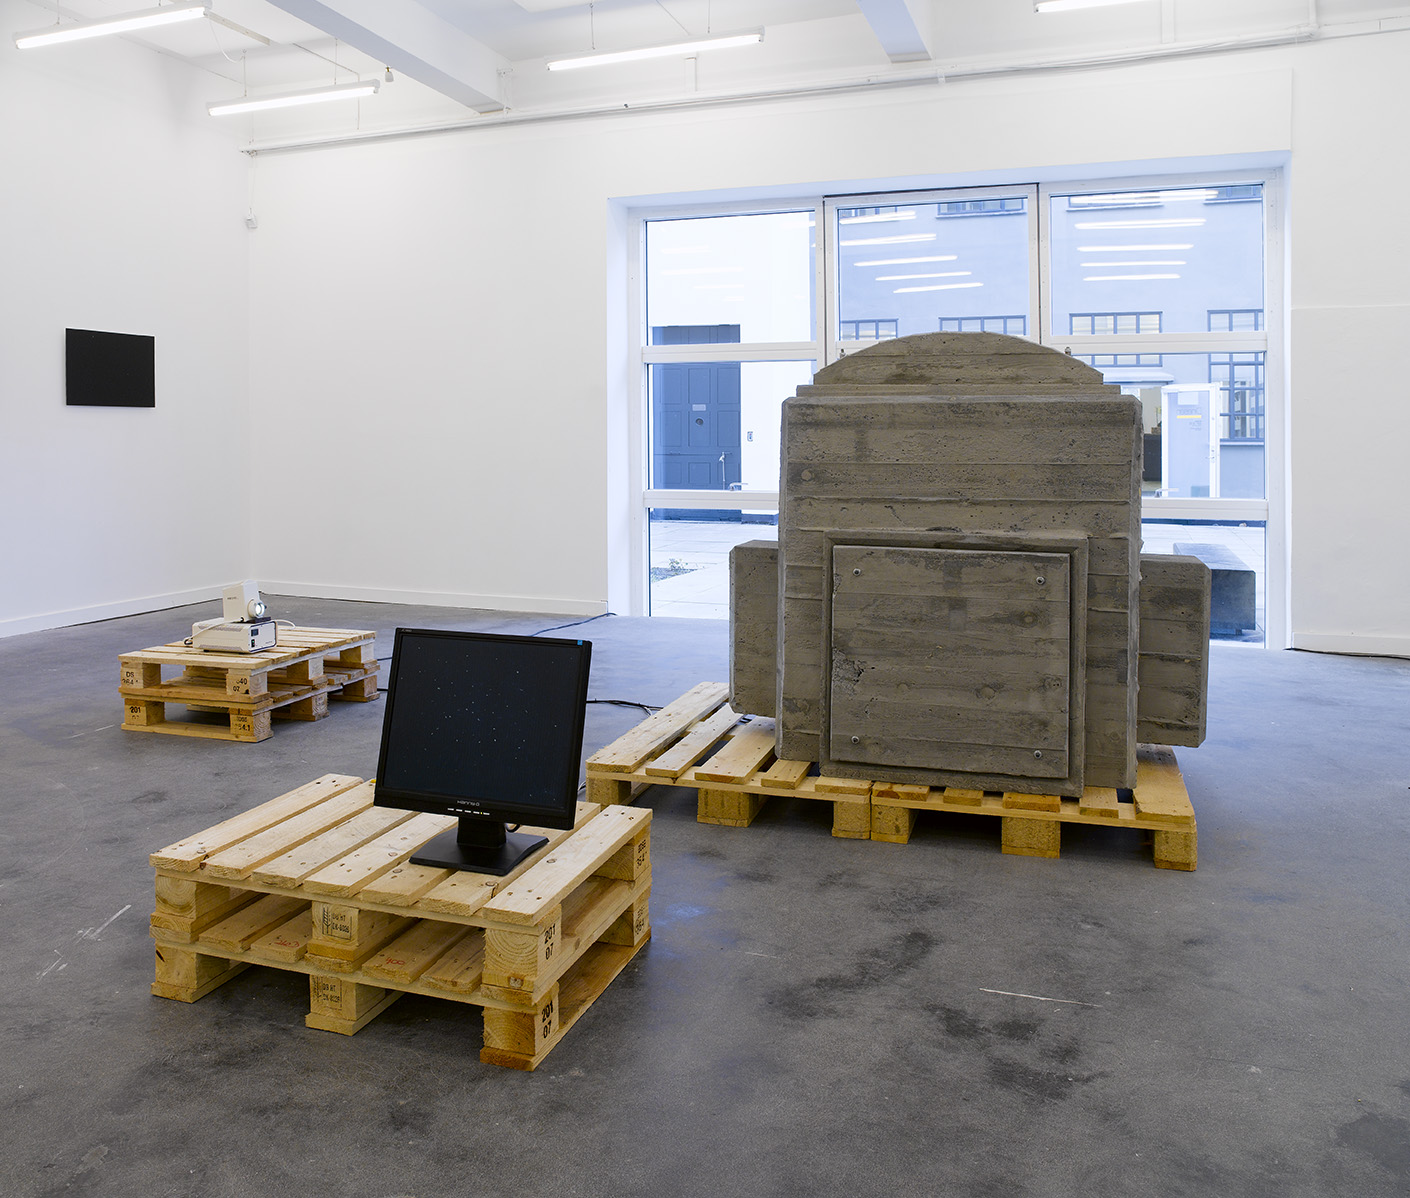 Dust champer As exhibited at Gallery Christina Wilson, DK. 2007 Materials: Concrete, wood, lamp, video camera, monitor, electric motor.